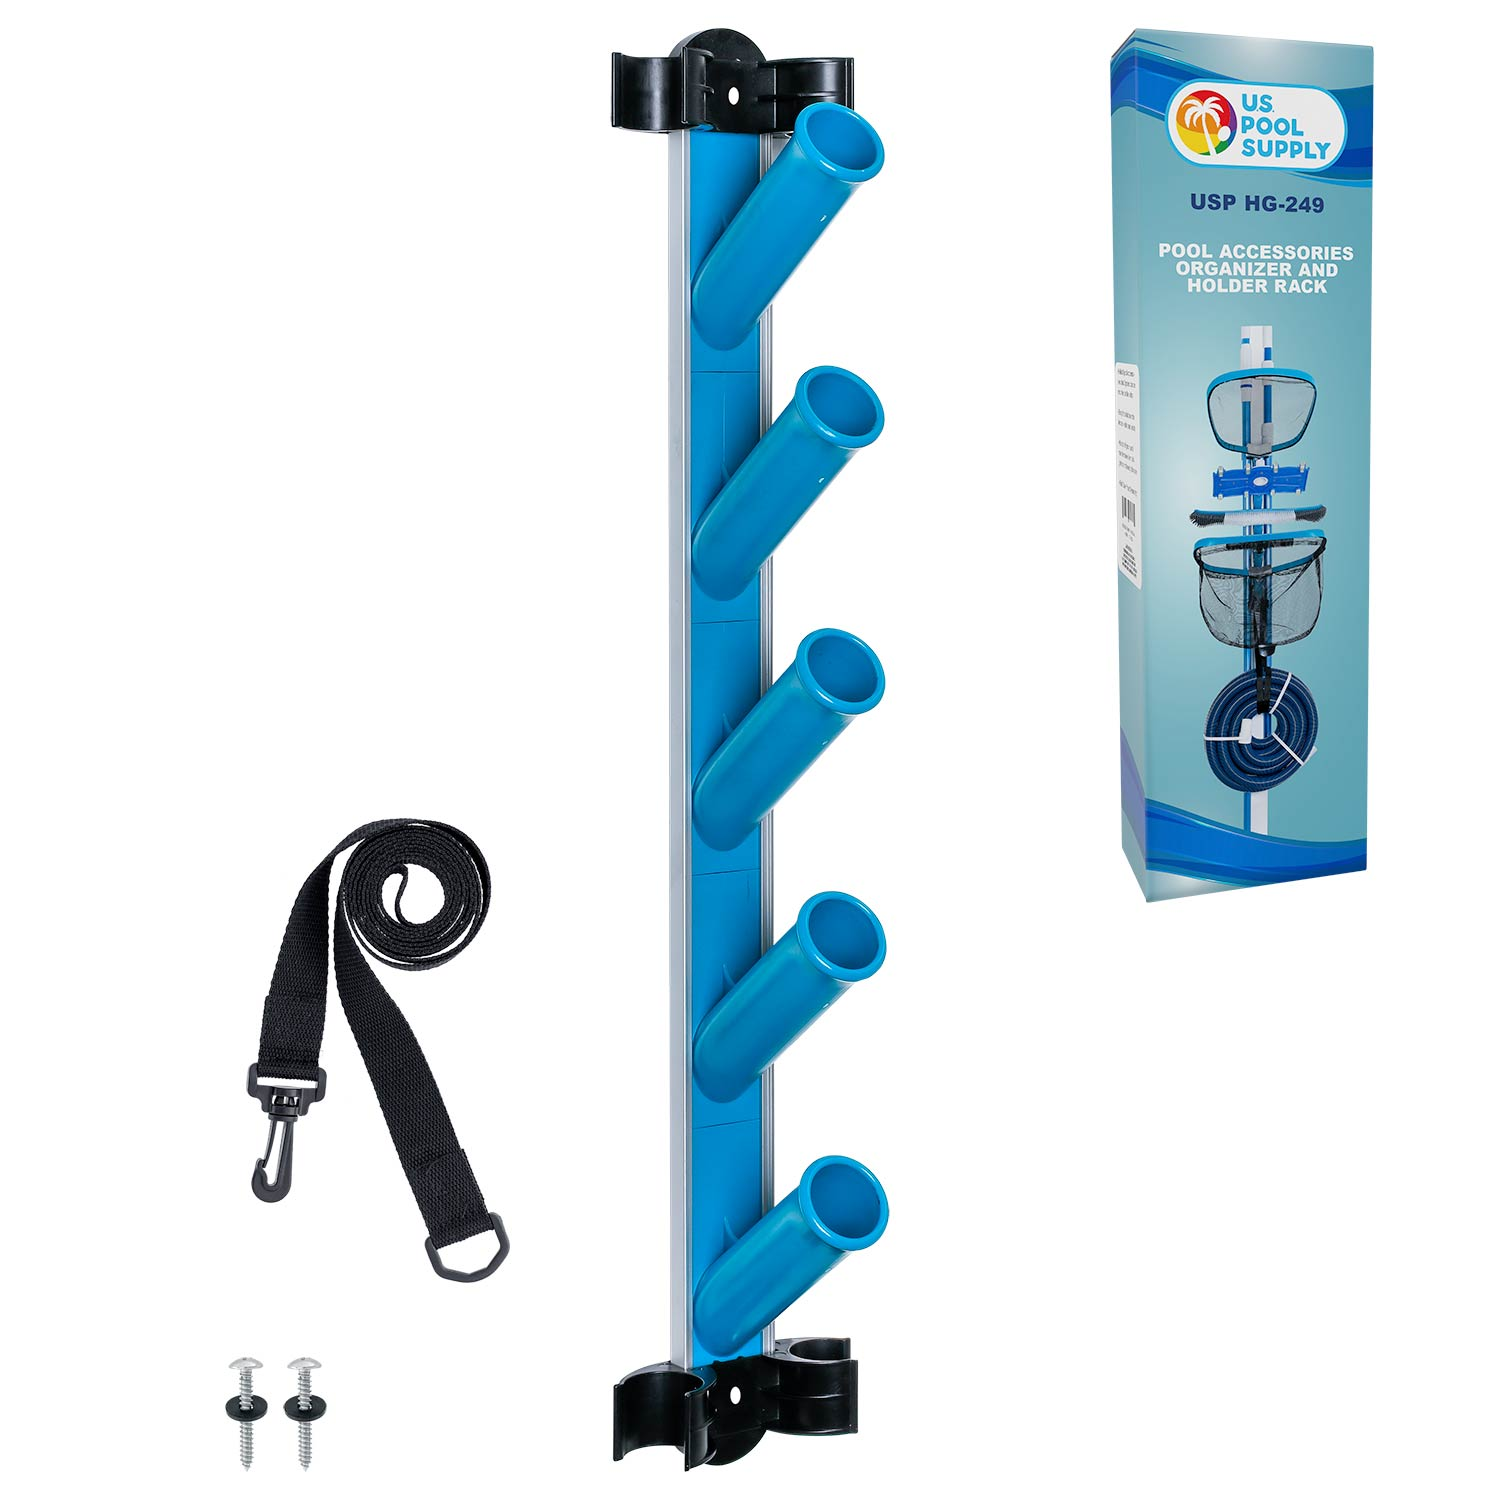 Pool Cleaning Accessory Organizer